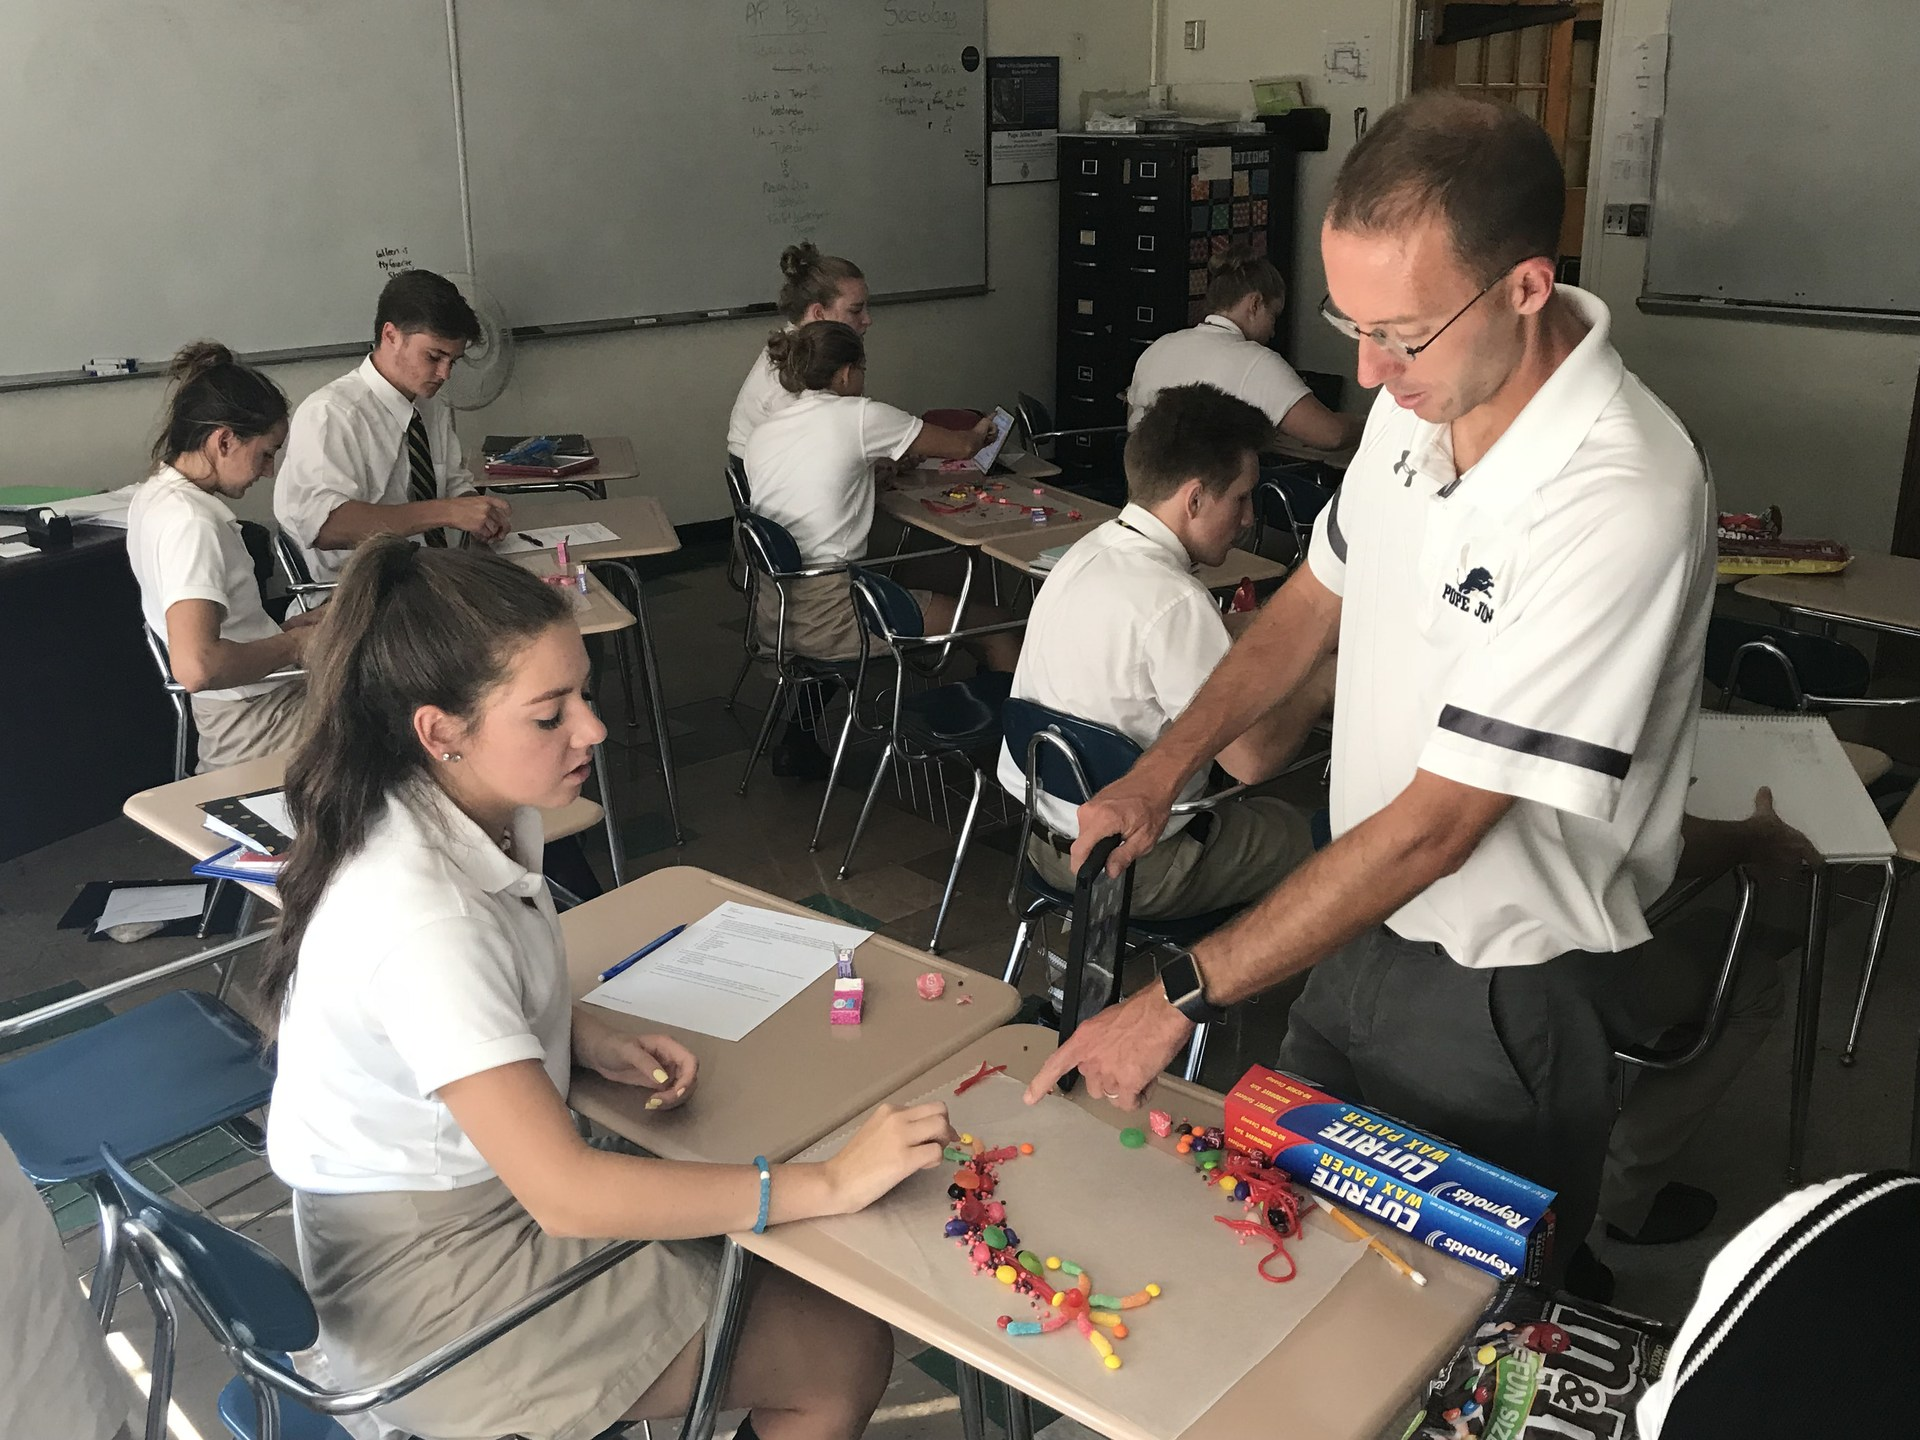 Teacher helping student understand neurons